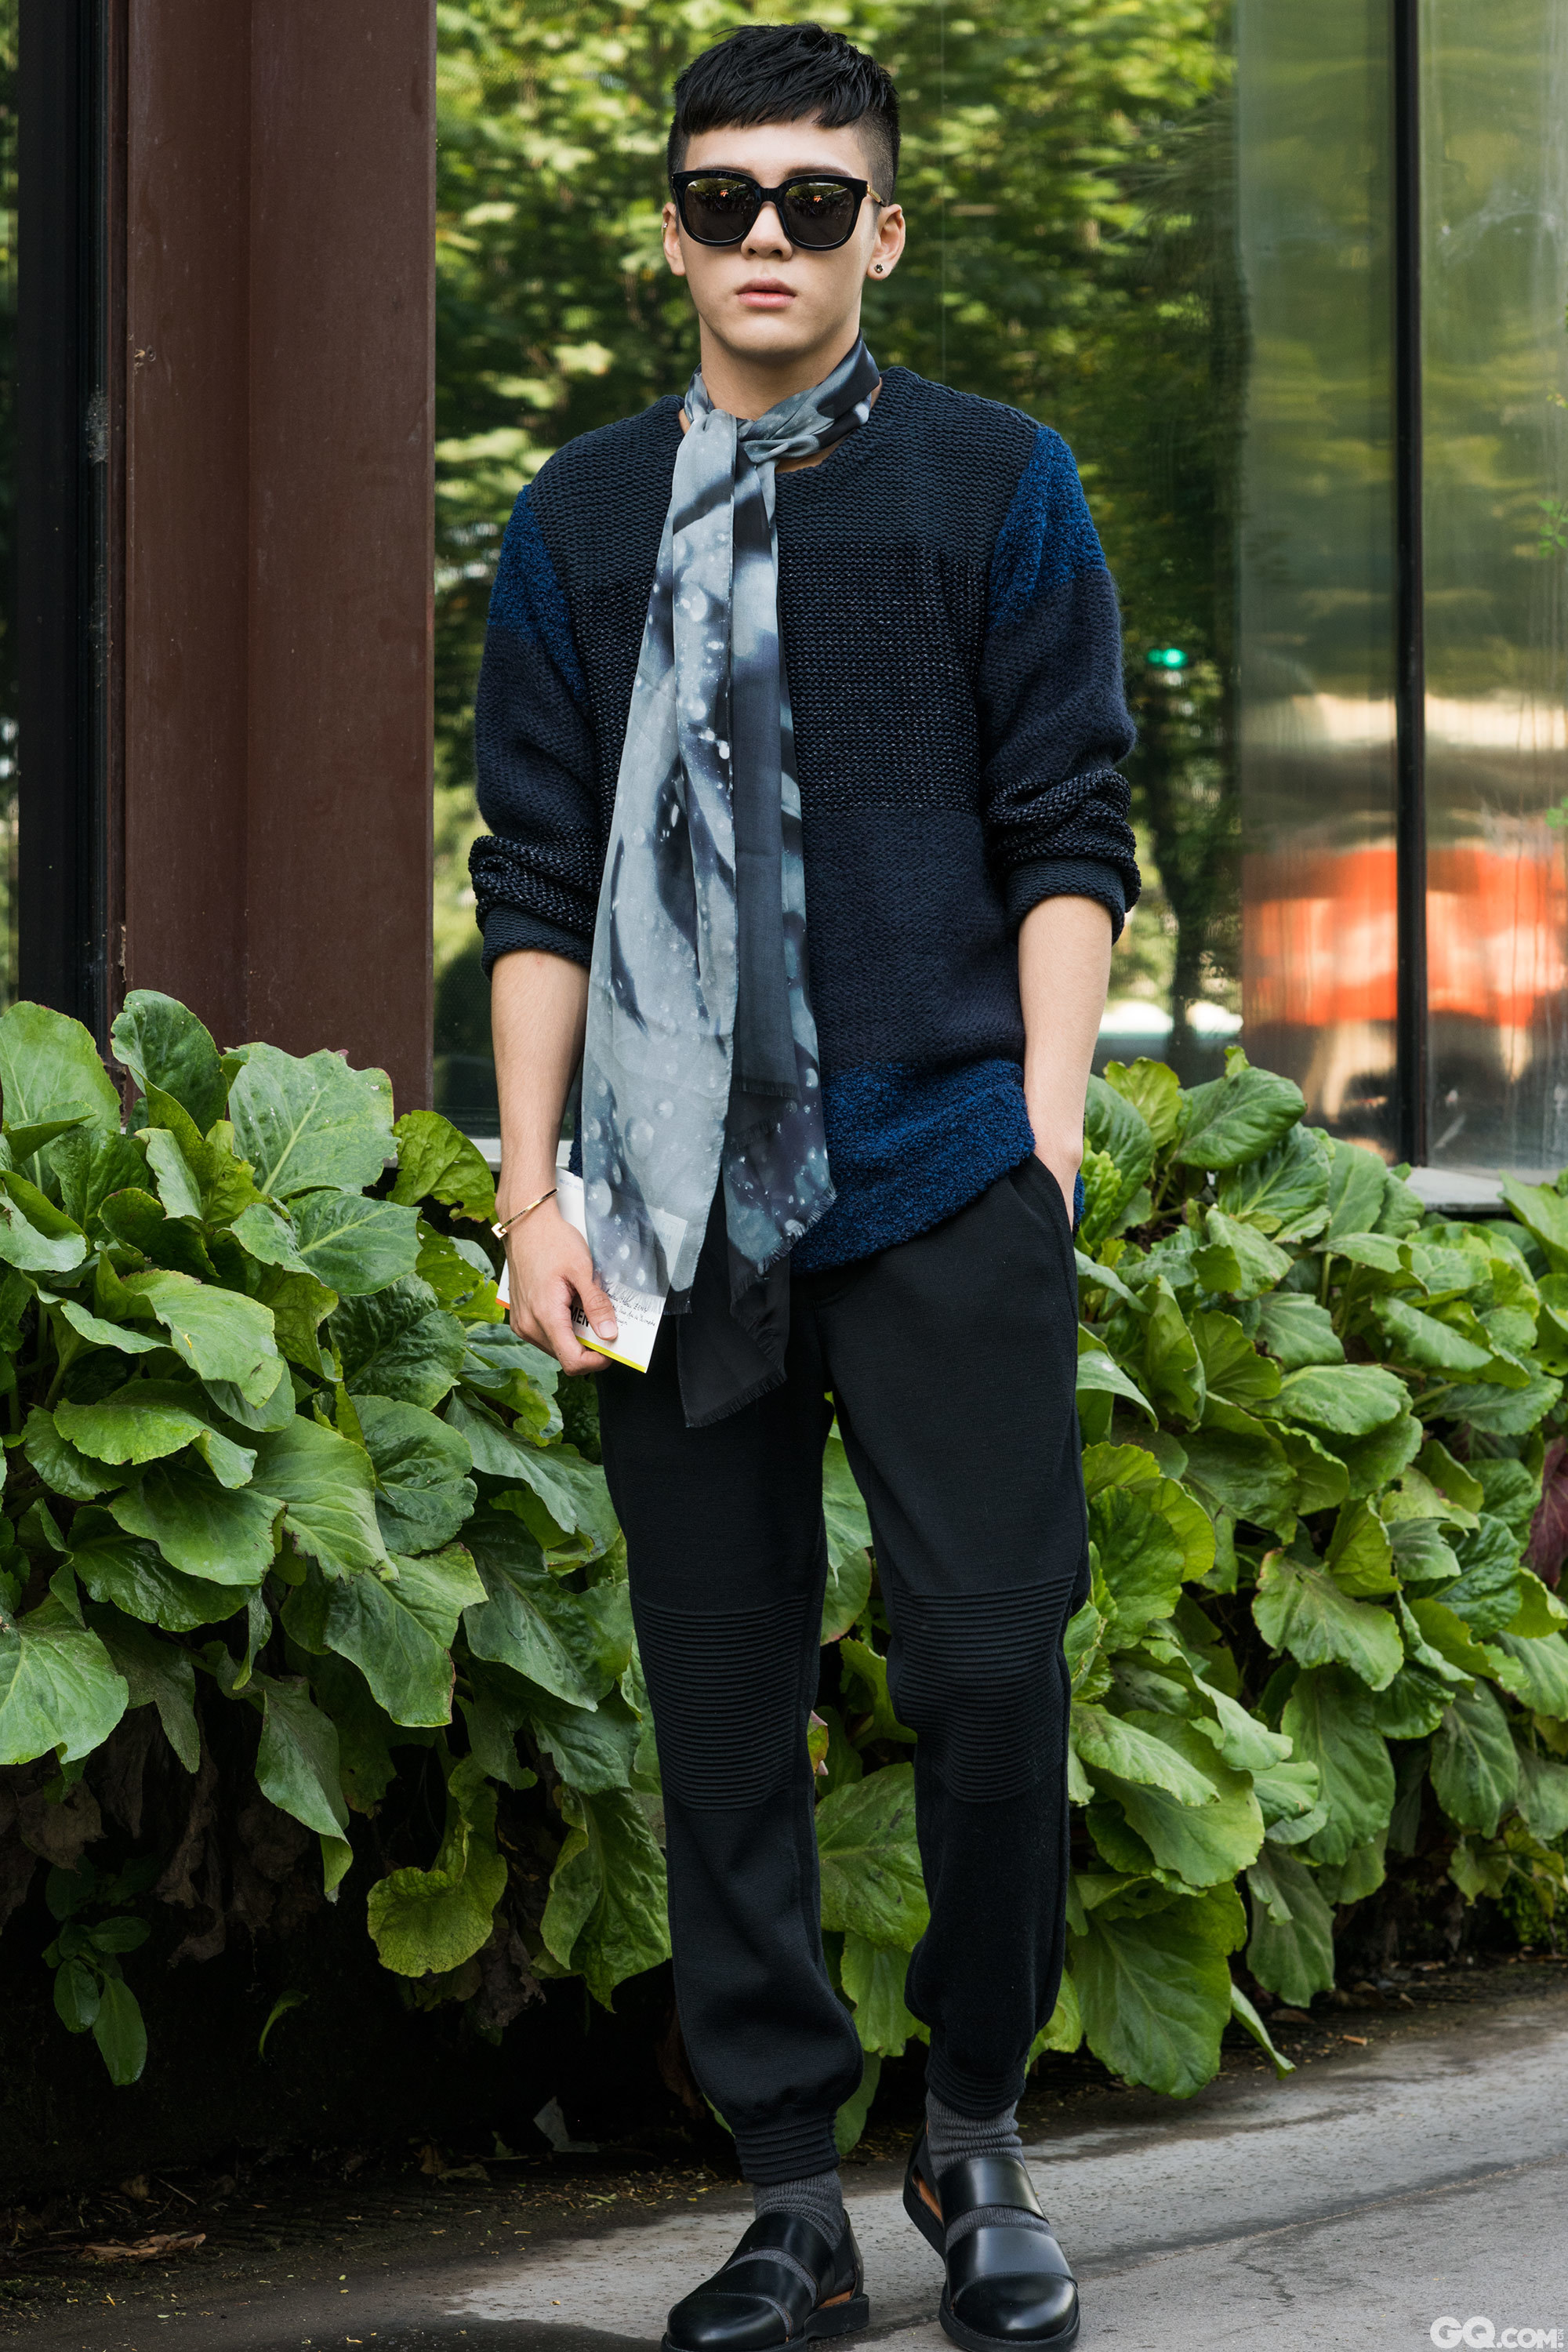 All look: Issey Miyake Shoes: Cos  Inspiration: It's very warm so I wanted to wear light fabrics (今天非常热所以我想穿轻薄面料的衣服)